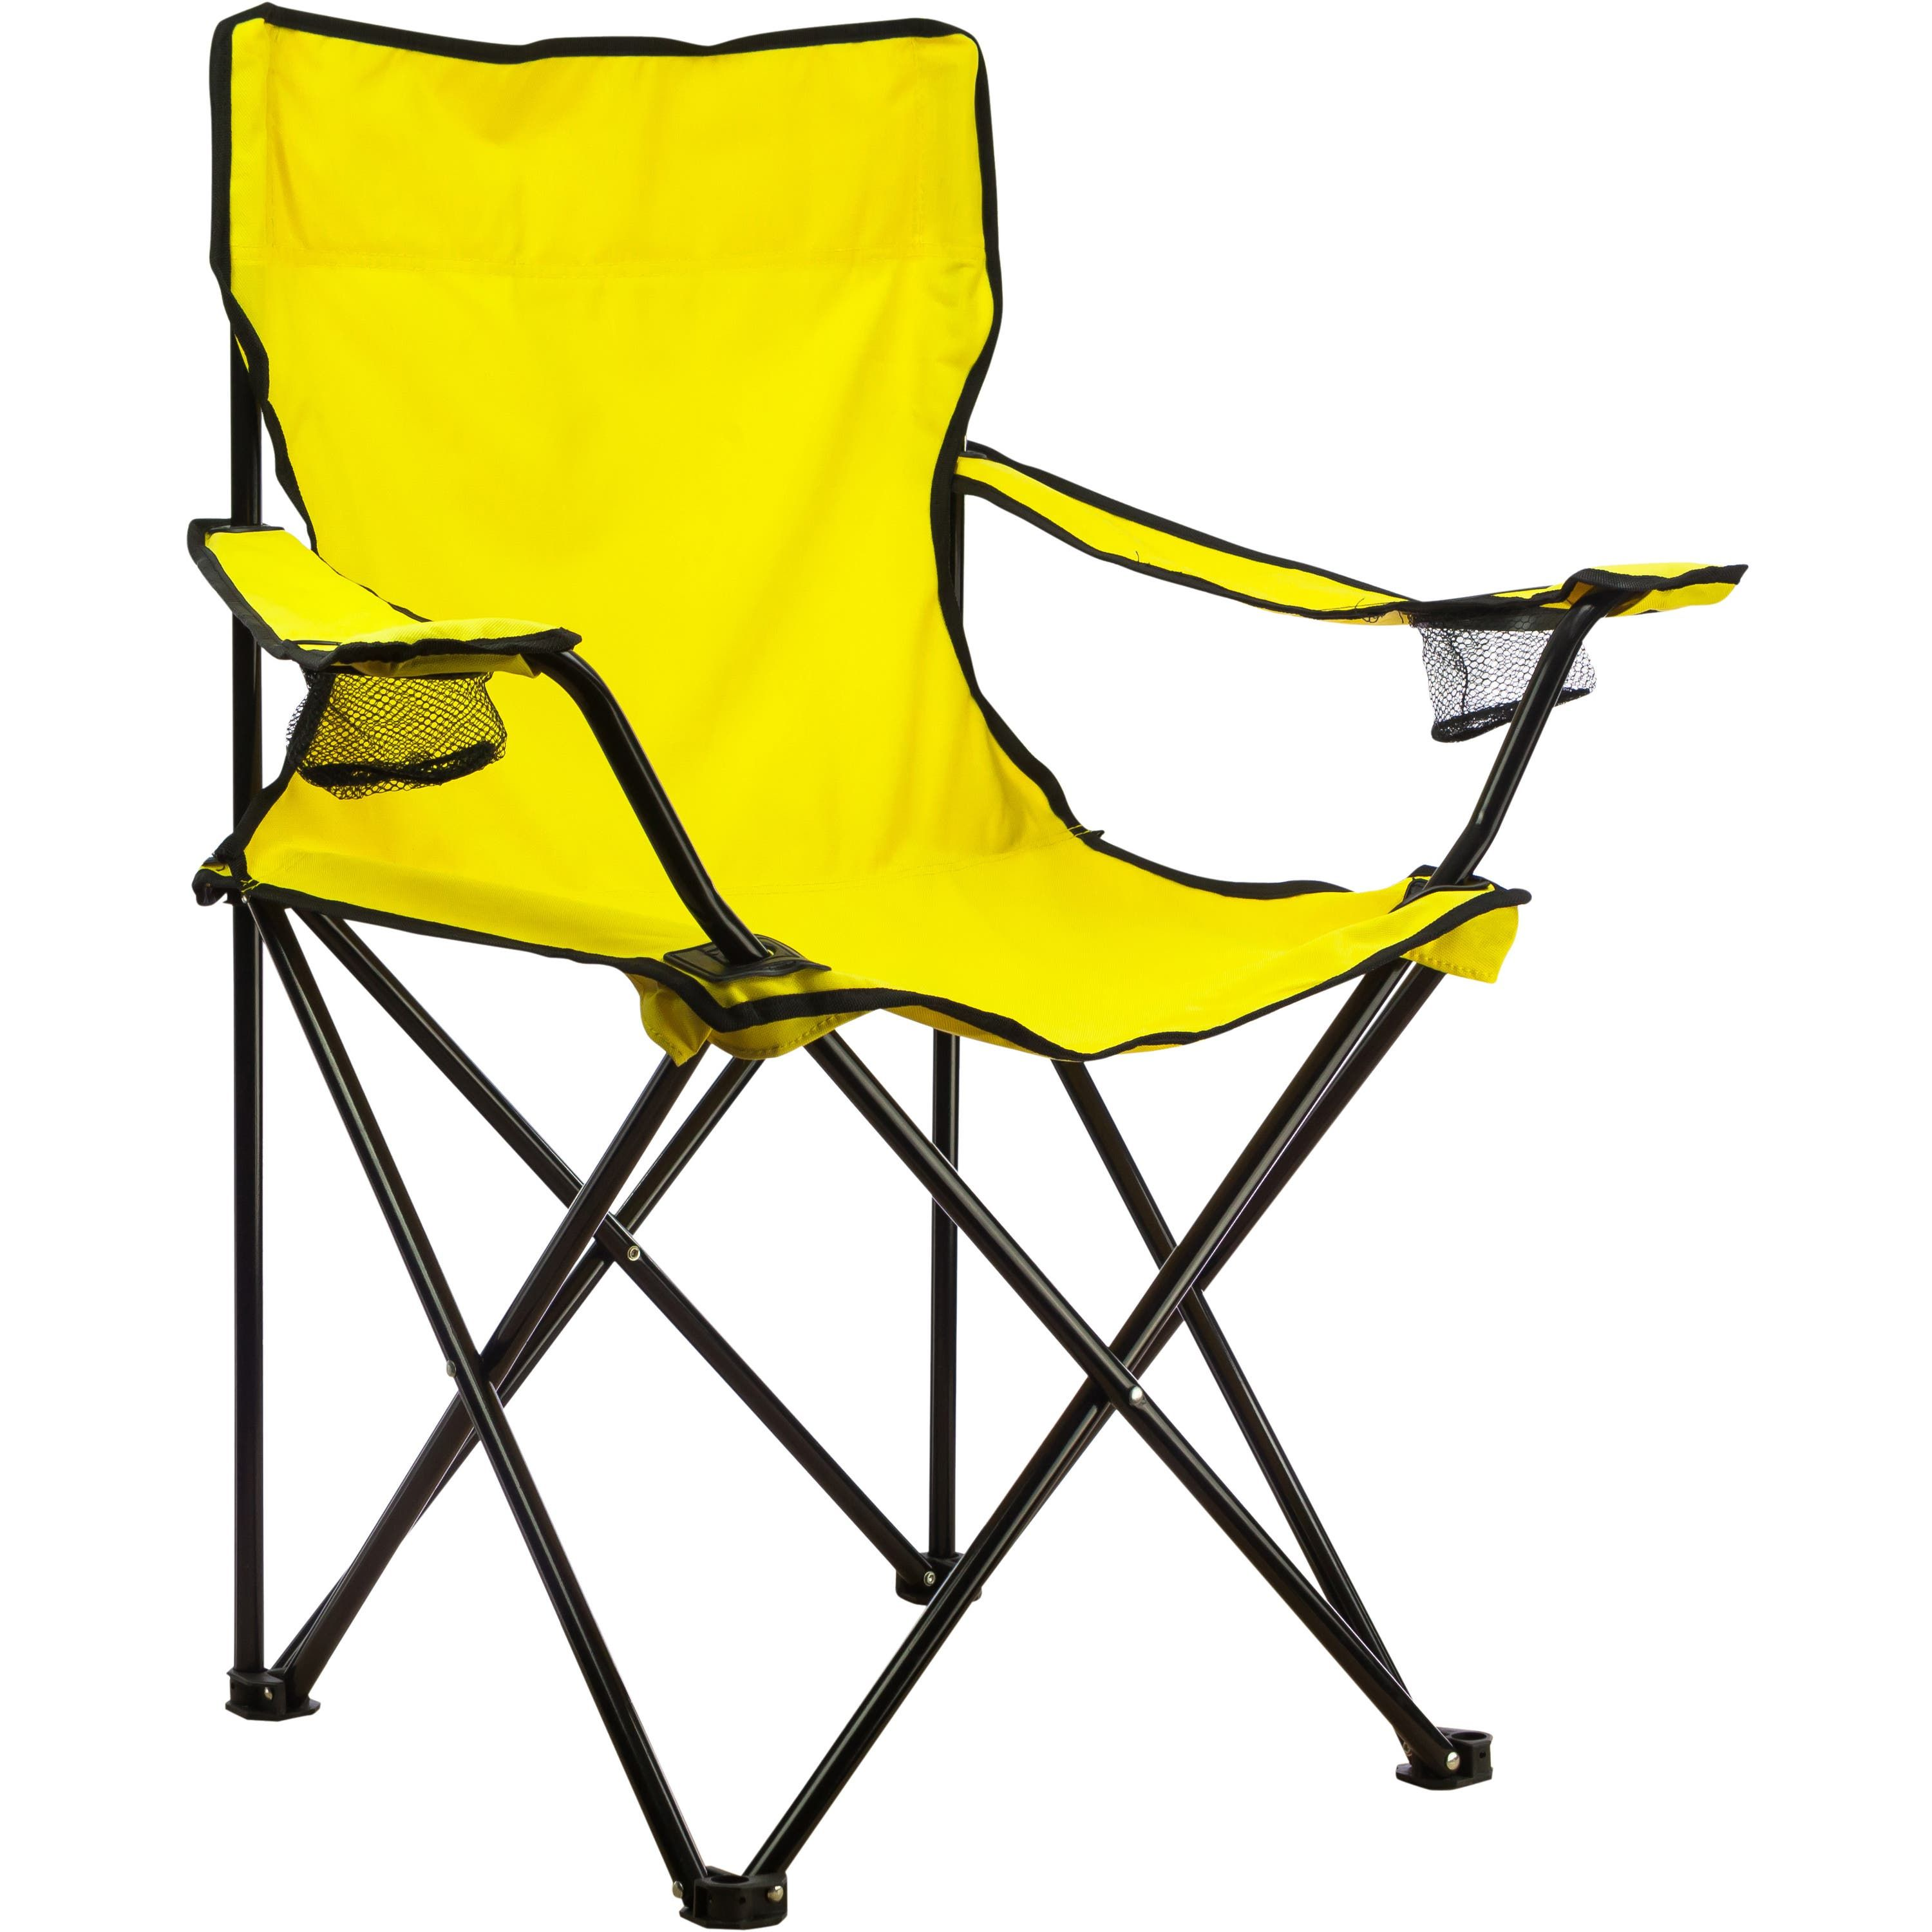 24 Qty Folding Chairs With Carrying Bag Printed With Your Logo Yellow Custom Folding Chairs In 2021 Folding Chair Custom Folding Chairs Outdoor Folding Chairs